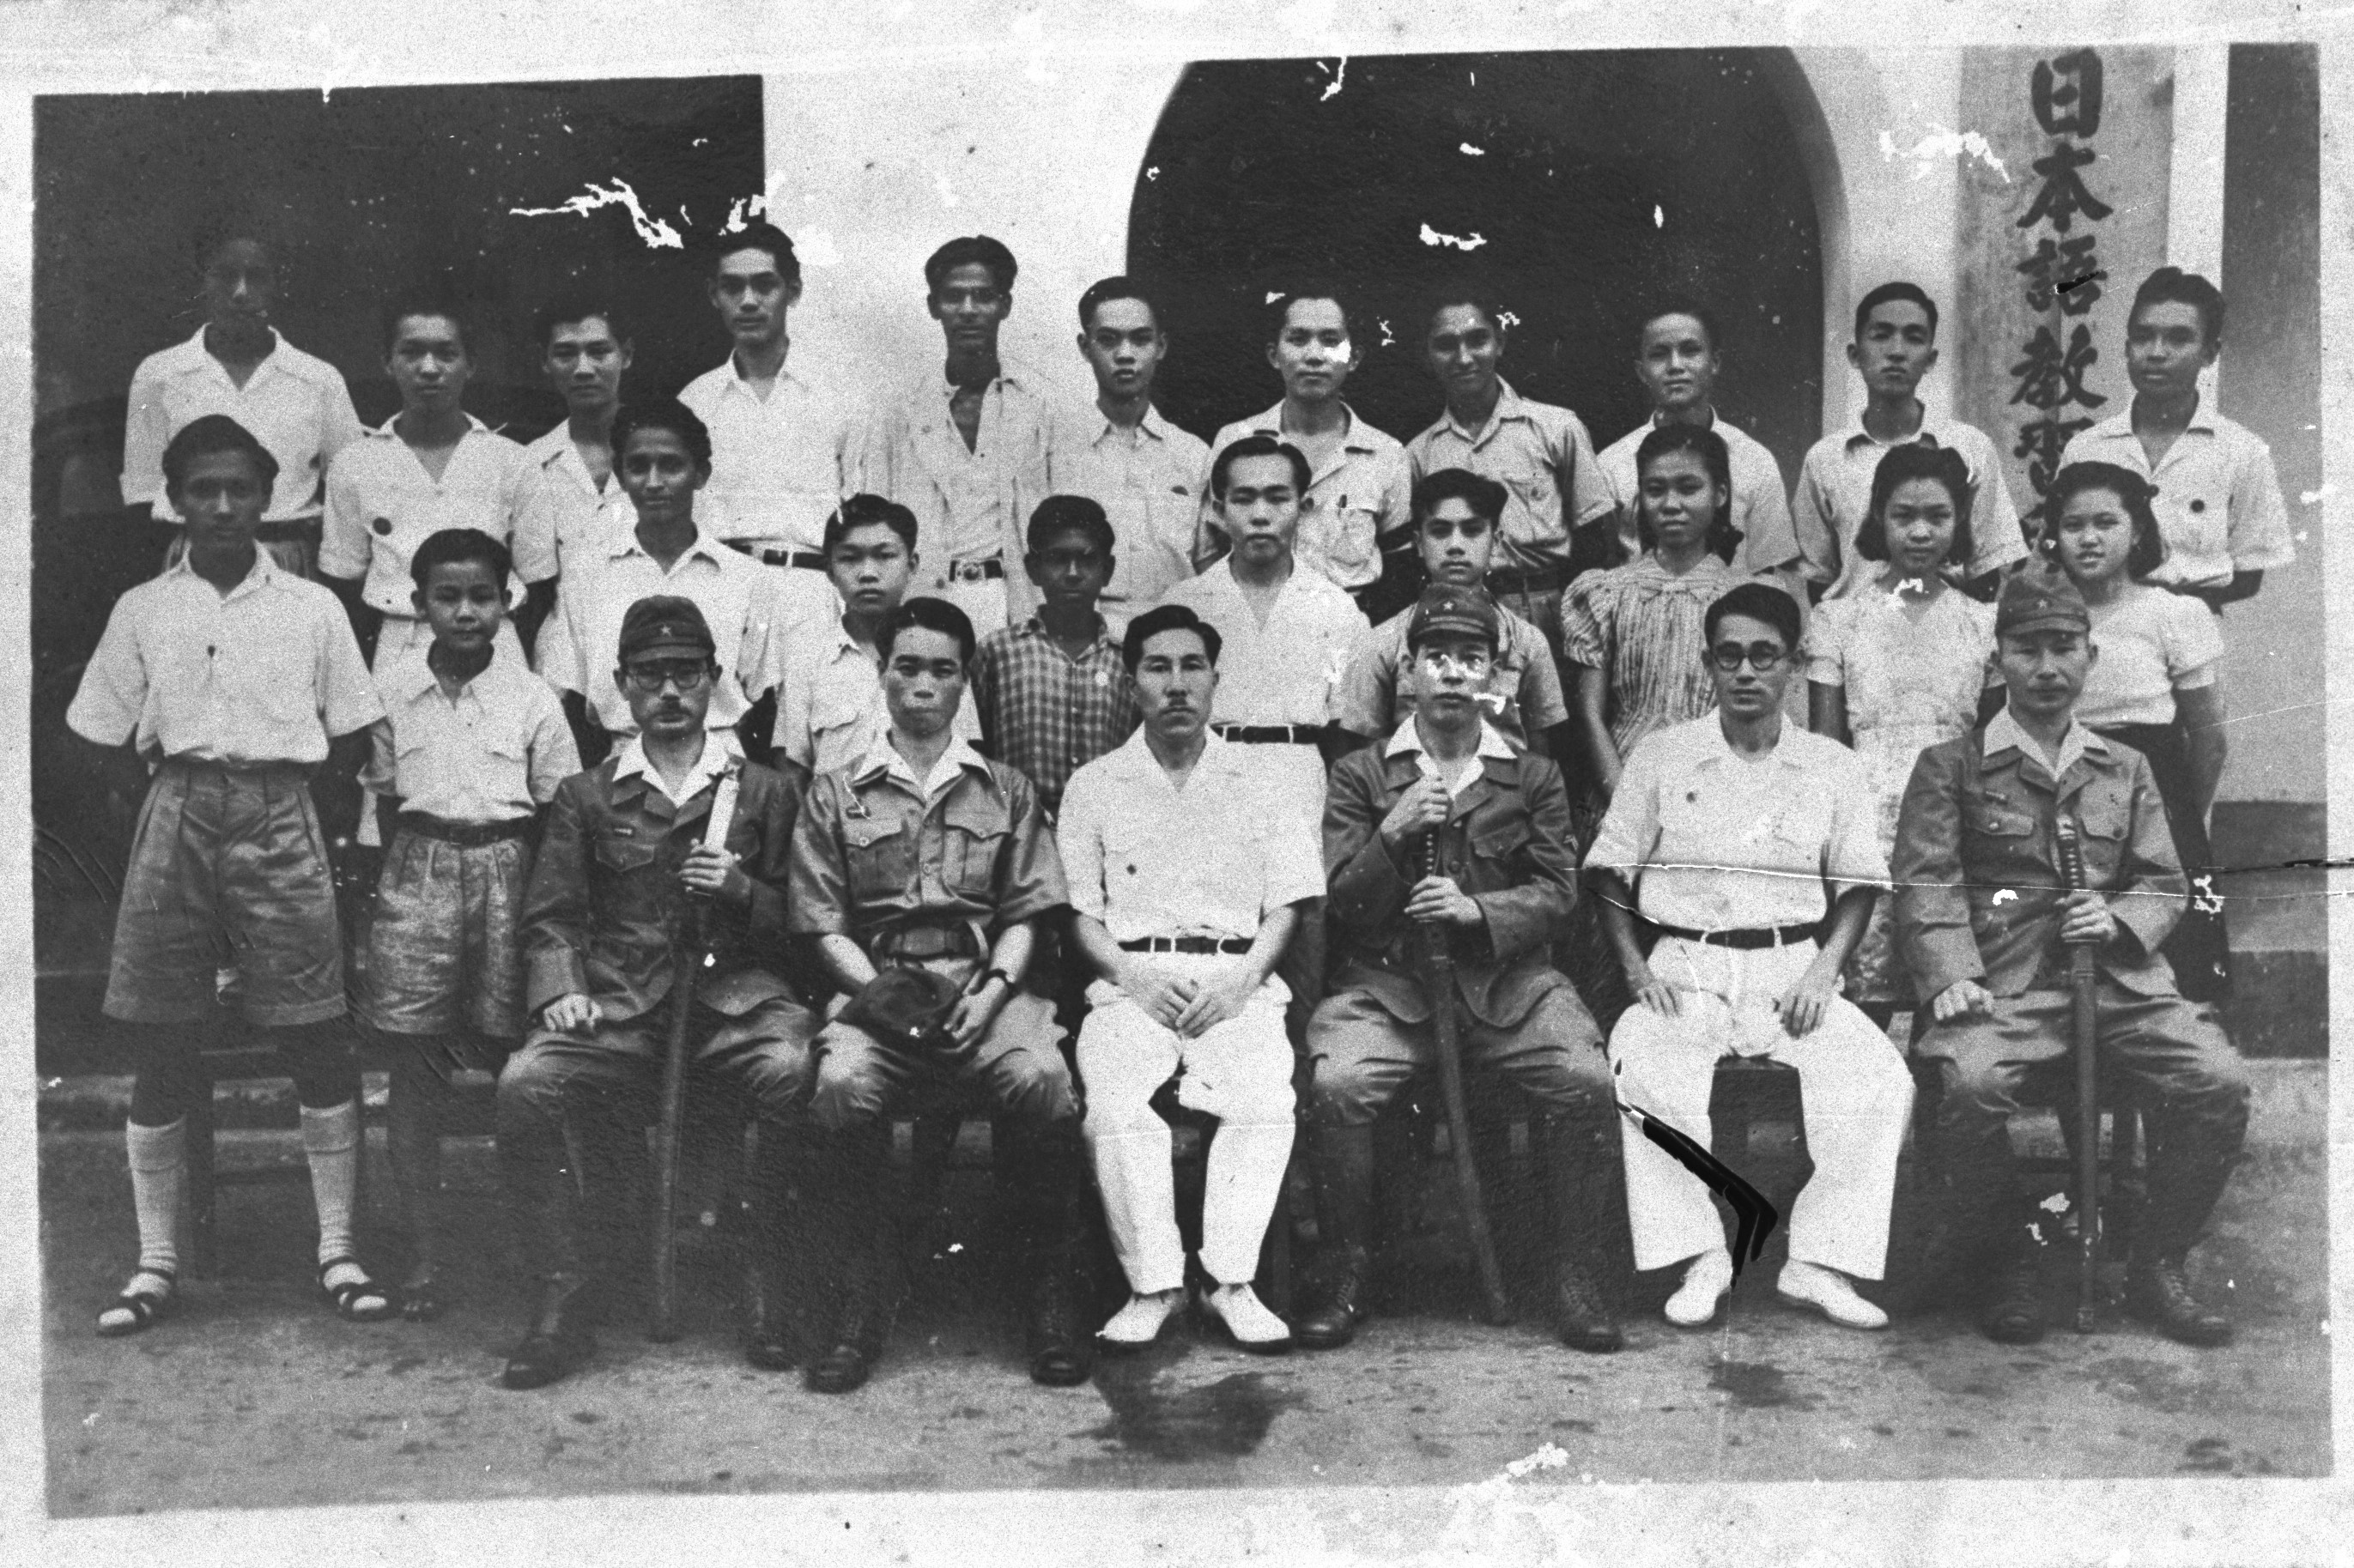 Group photograph of a Japanese language class during the Japanese Occupation